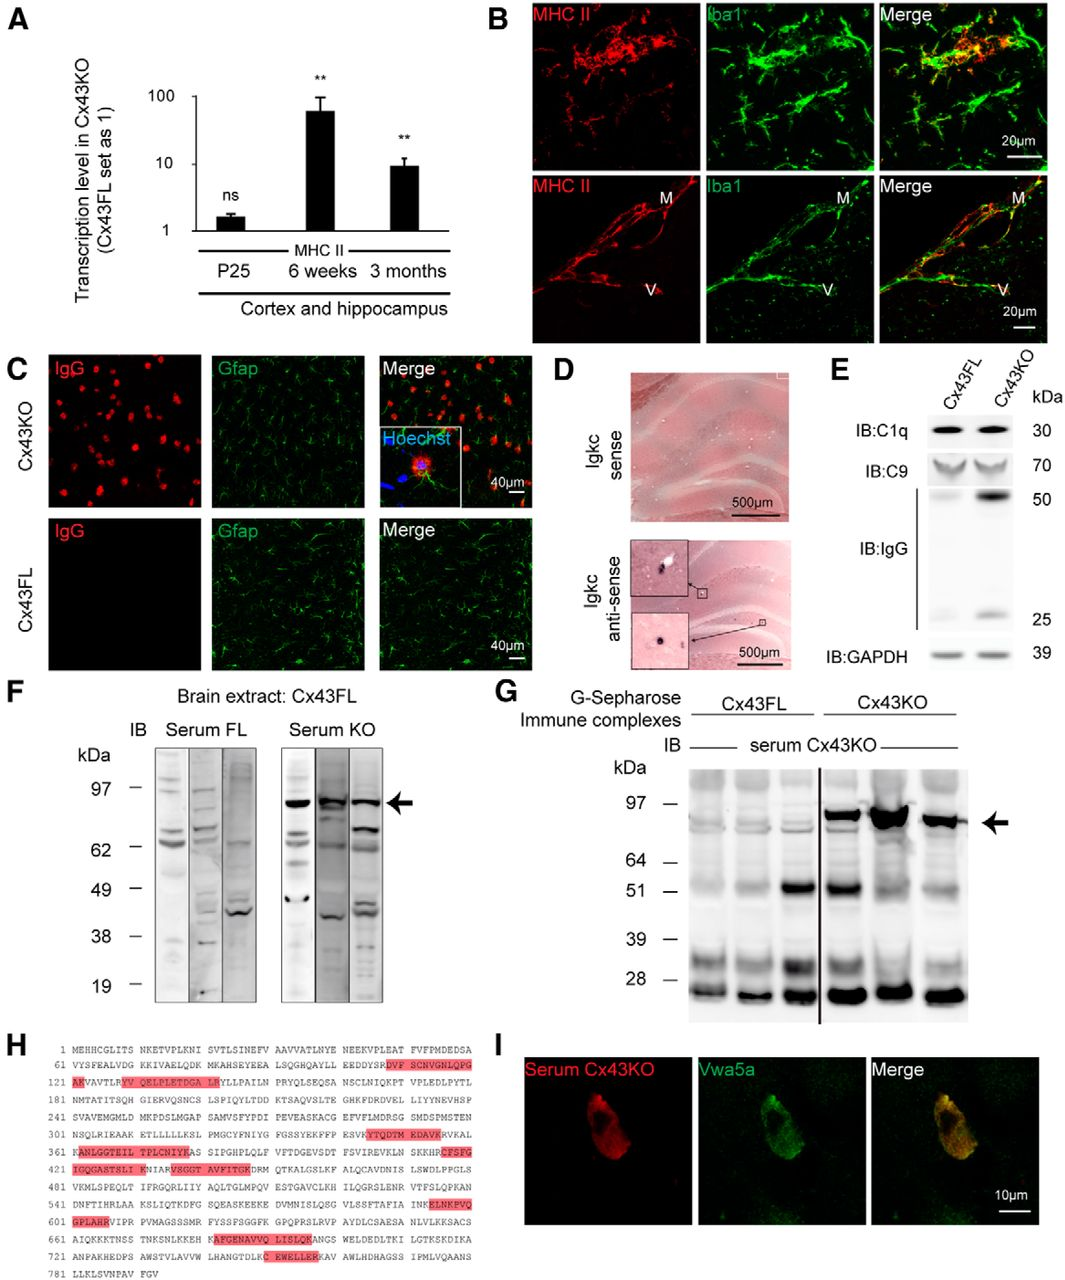 Immune Quiescence Of The Brain Is Set By Astroglial Connexin 43 Animal Cell Diagram Labeled Downloads 661 Recommended 13 Download Figure Open In New Tab Powerpoint